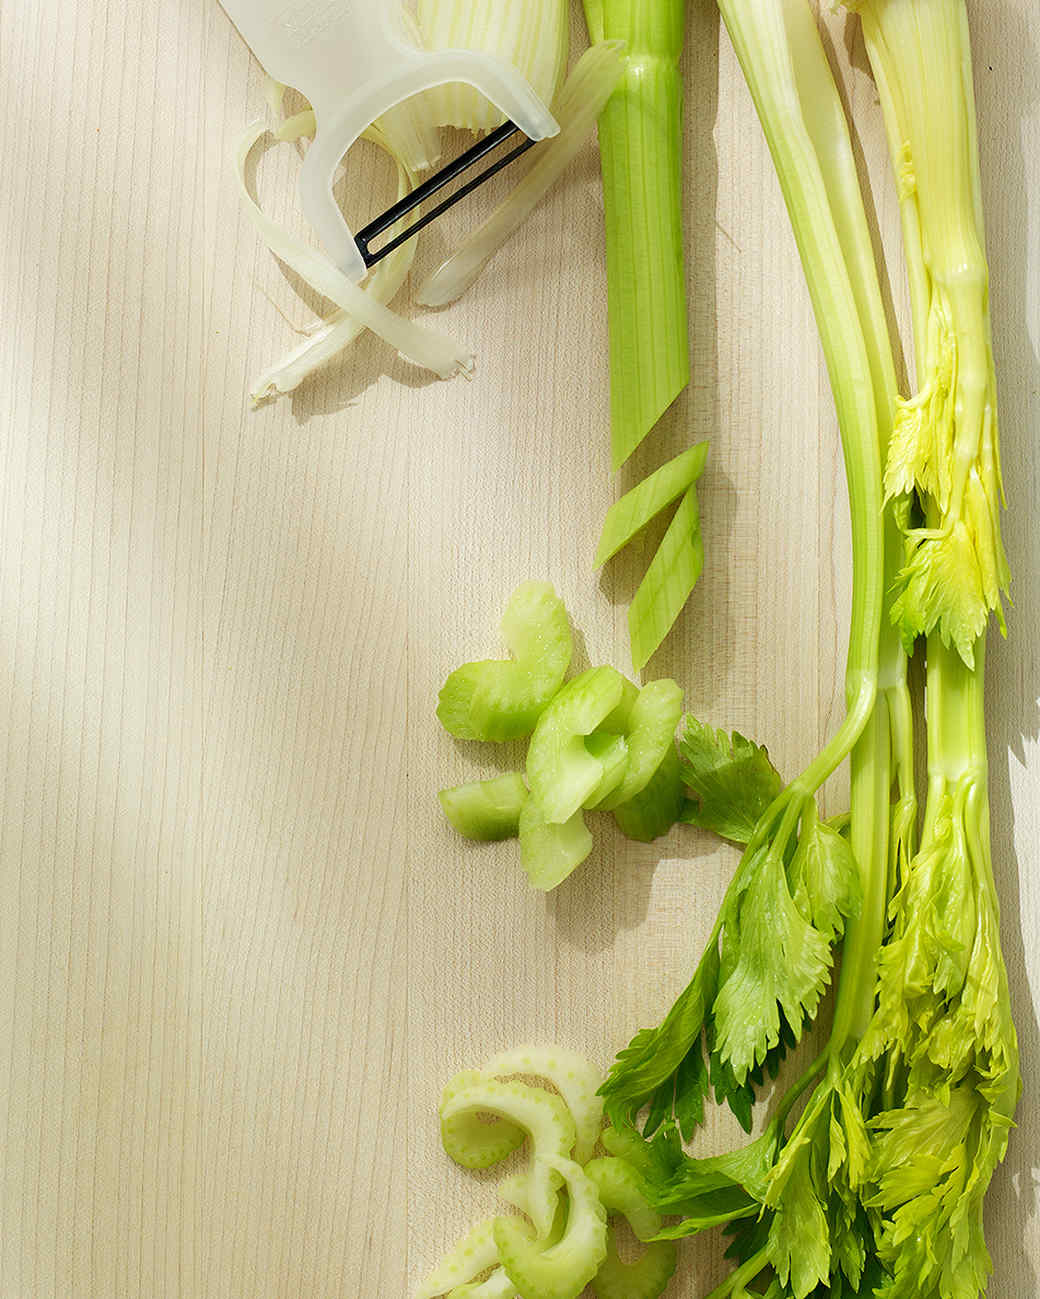 celery-on-cutting-board-ed101894sea002c.jpg